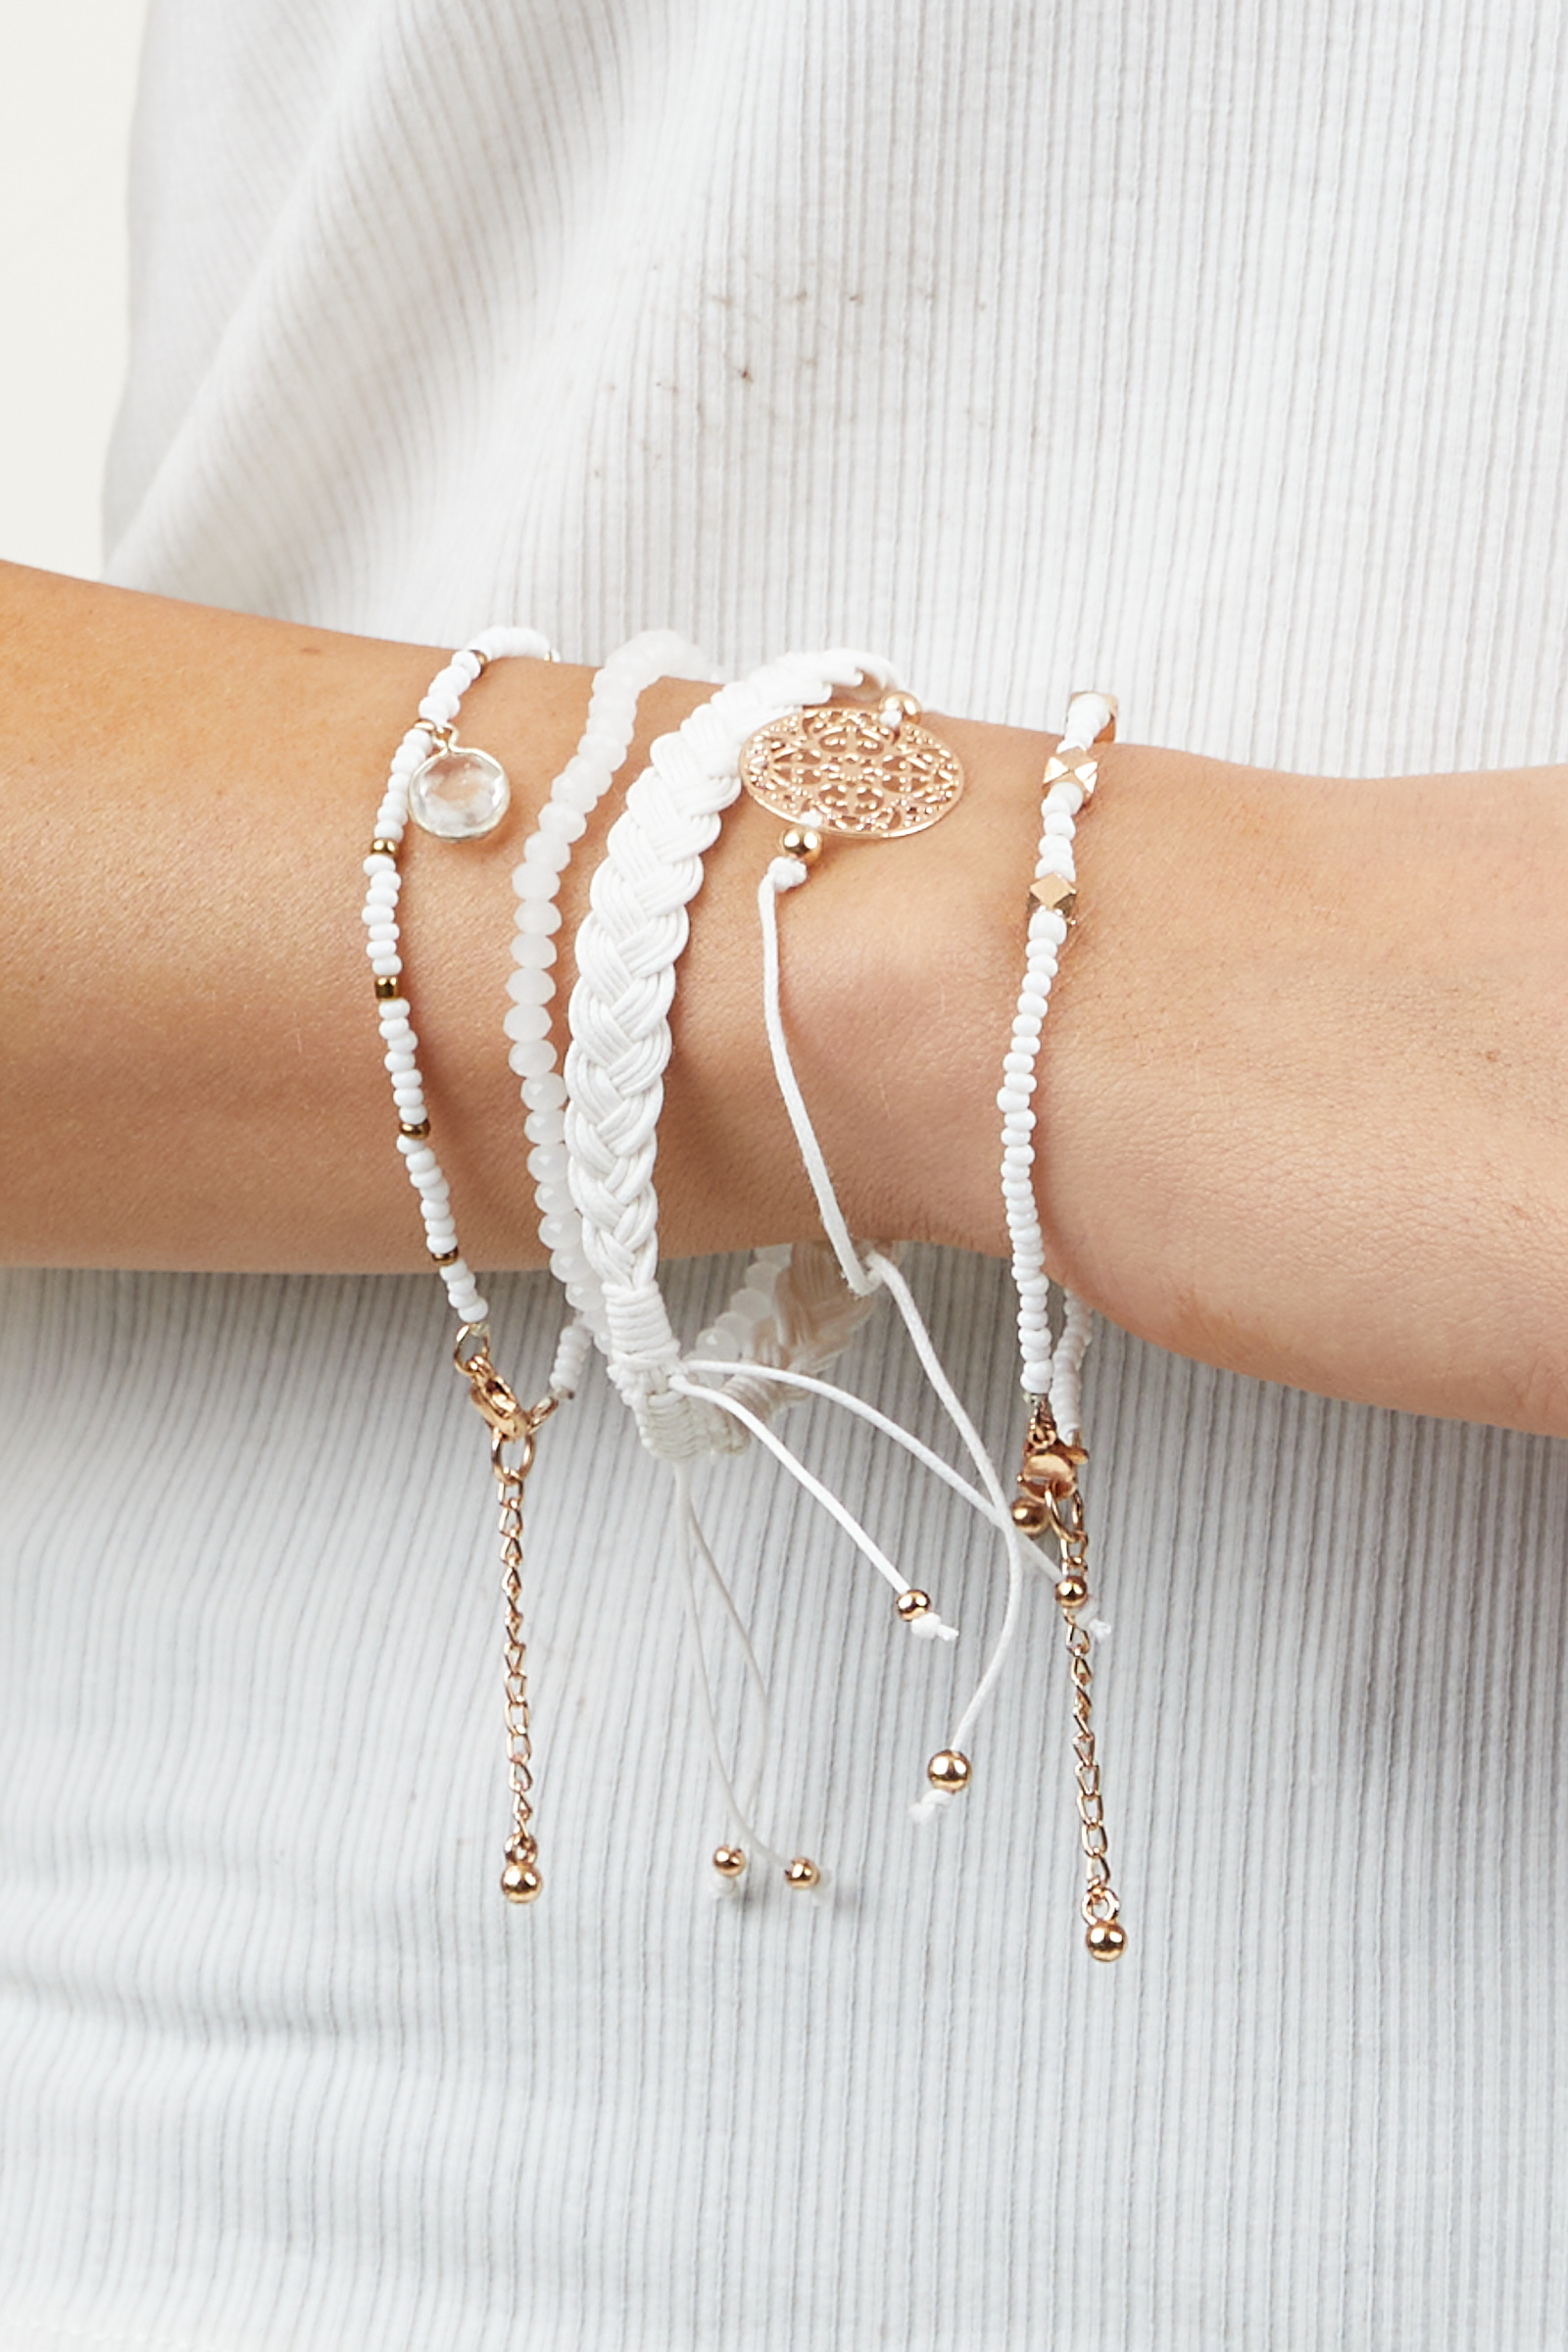 White and Gold Bead and Braided Bracelet Set with Charms